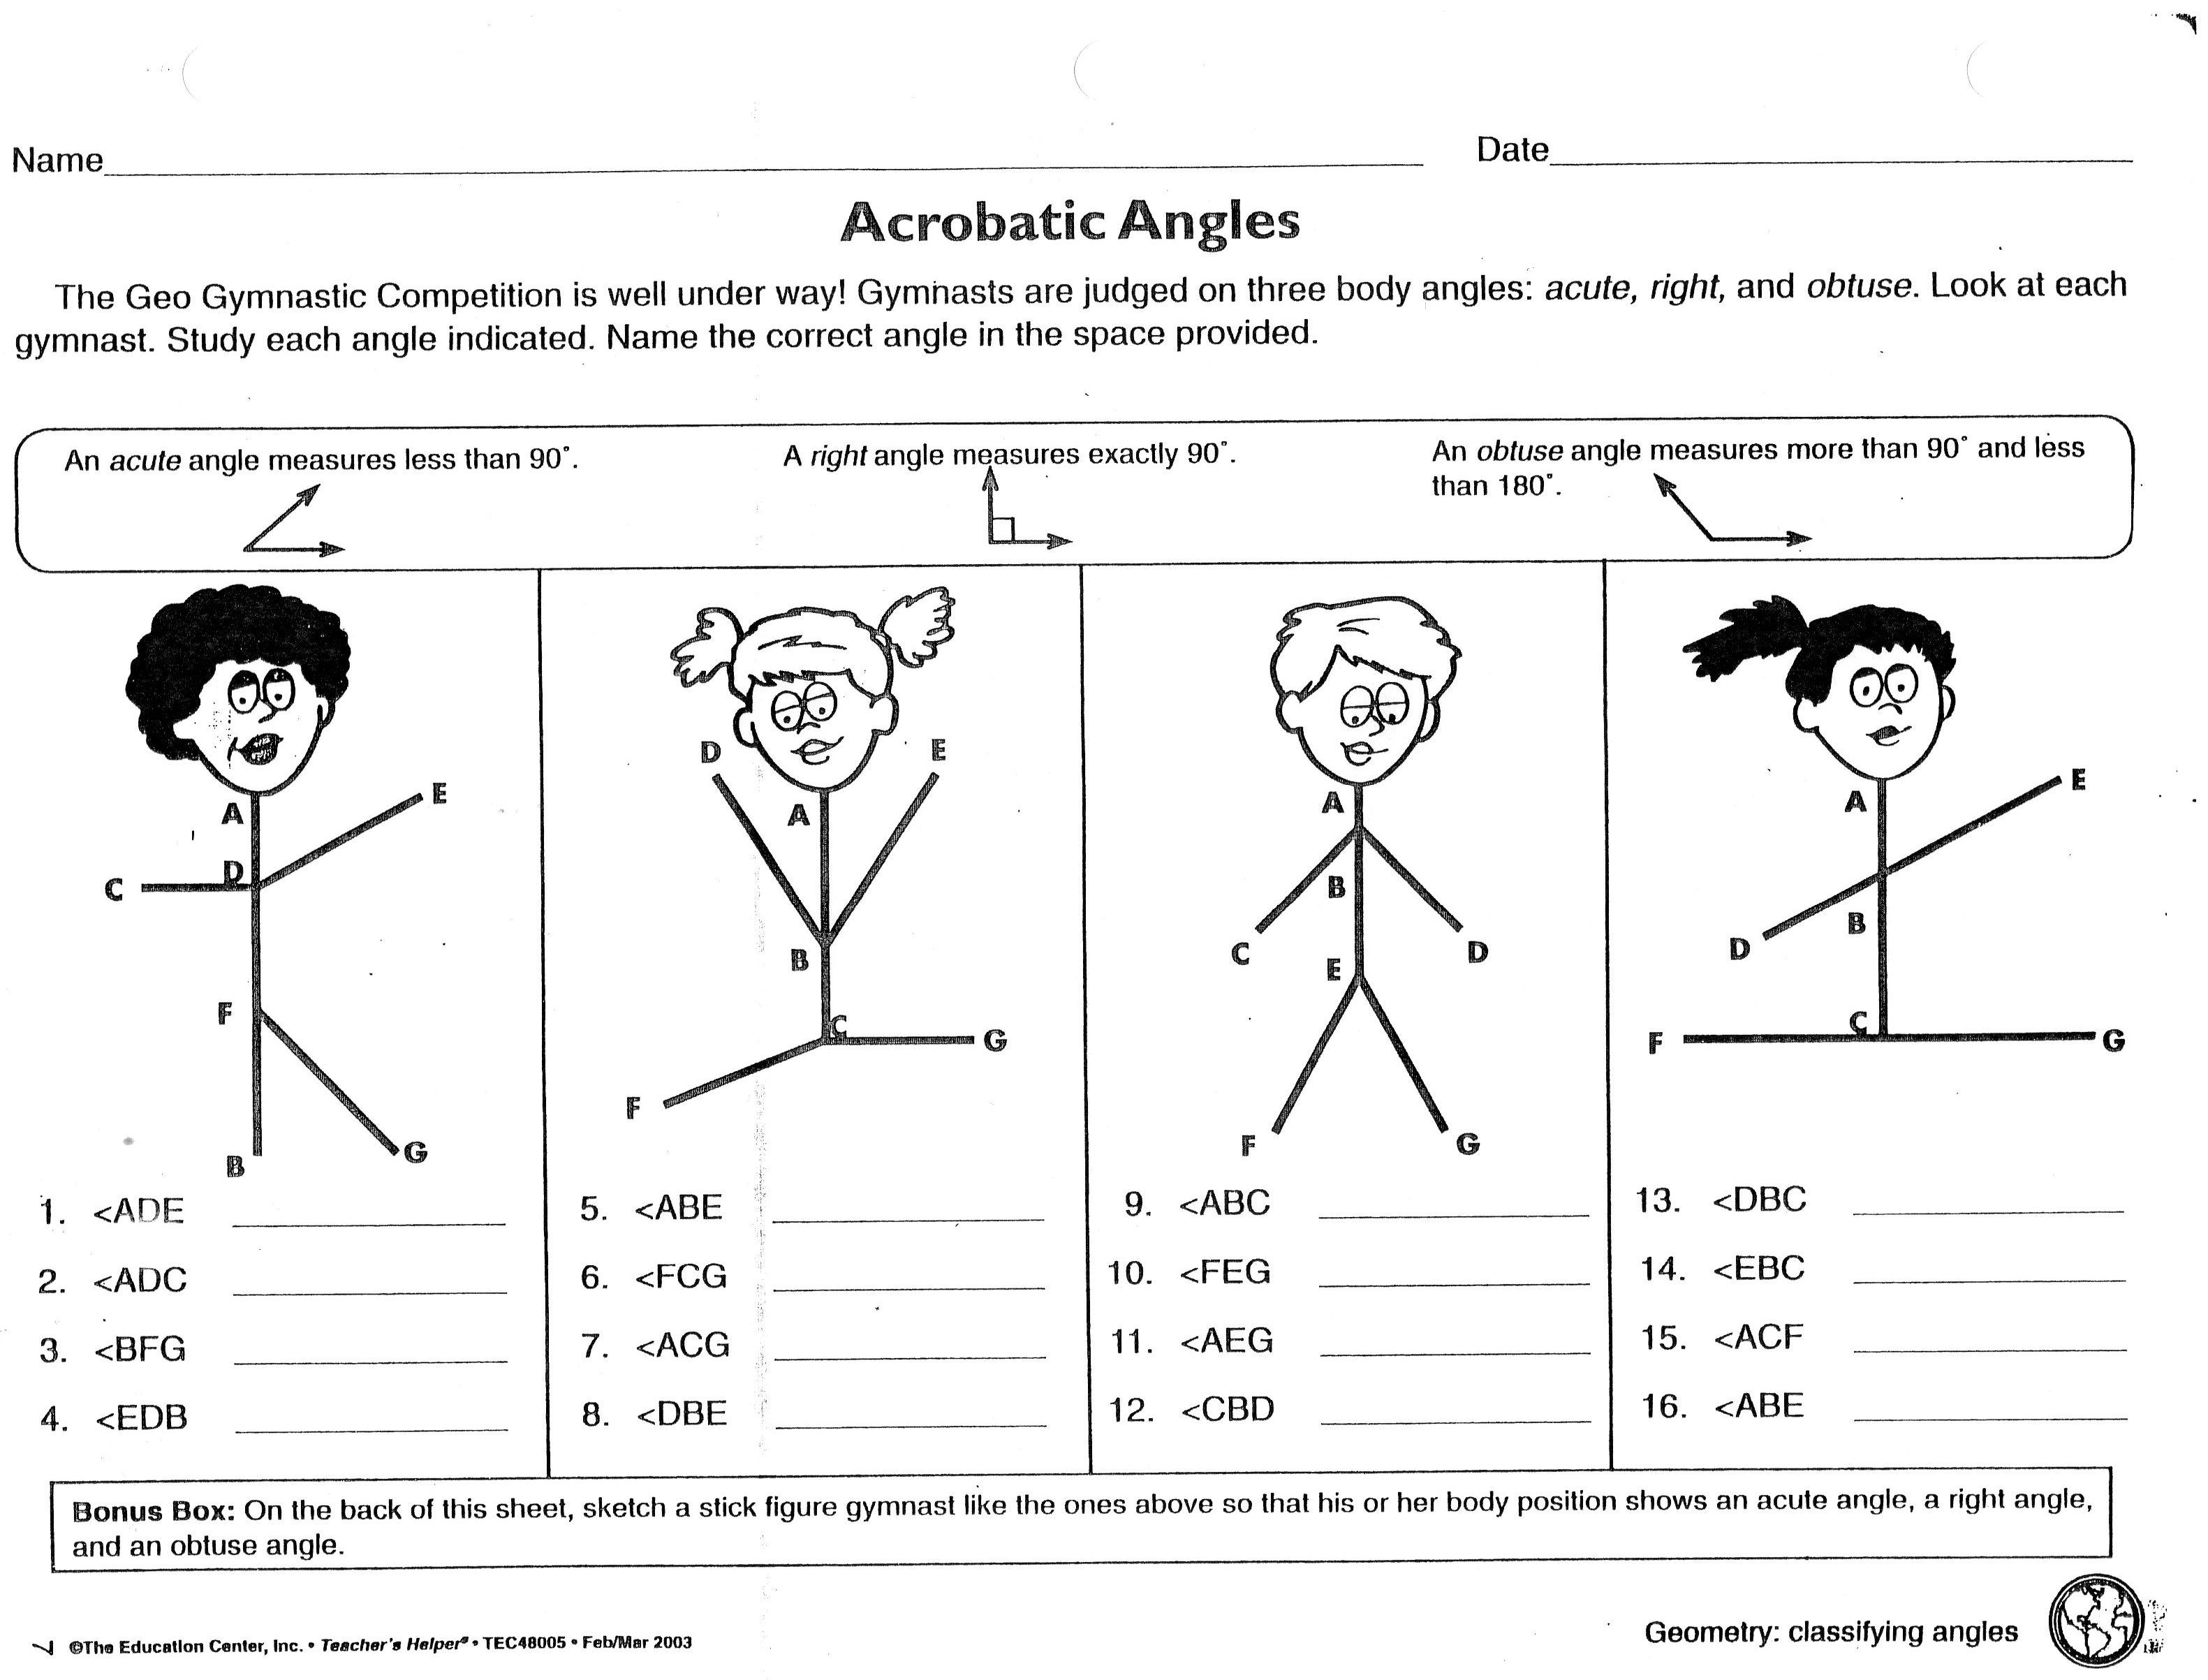 small resolution of acrobatic angles worksheet obtuse acute right michael jordan was math gr -  Criabooks : Criabooks   Angles worksheet